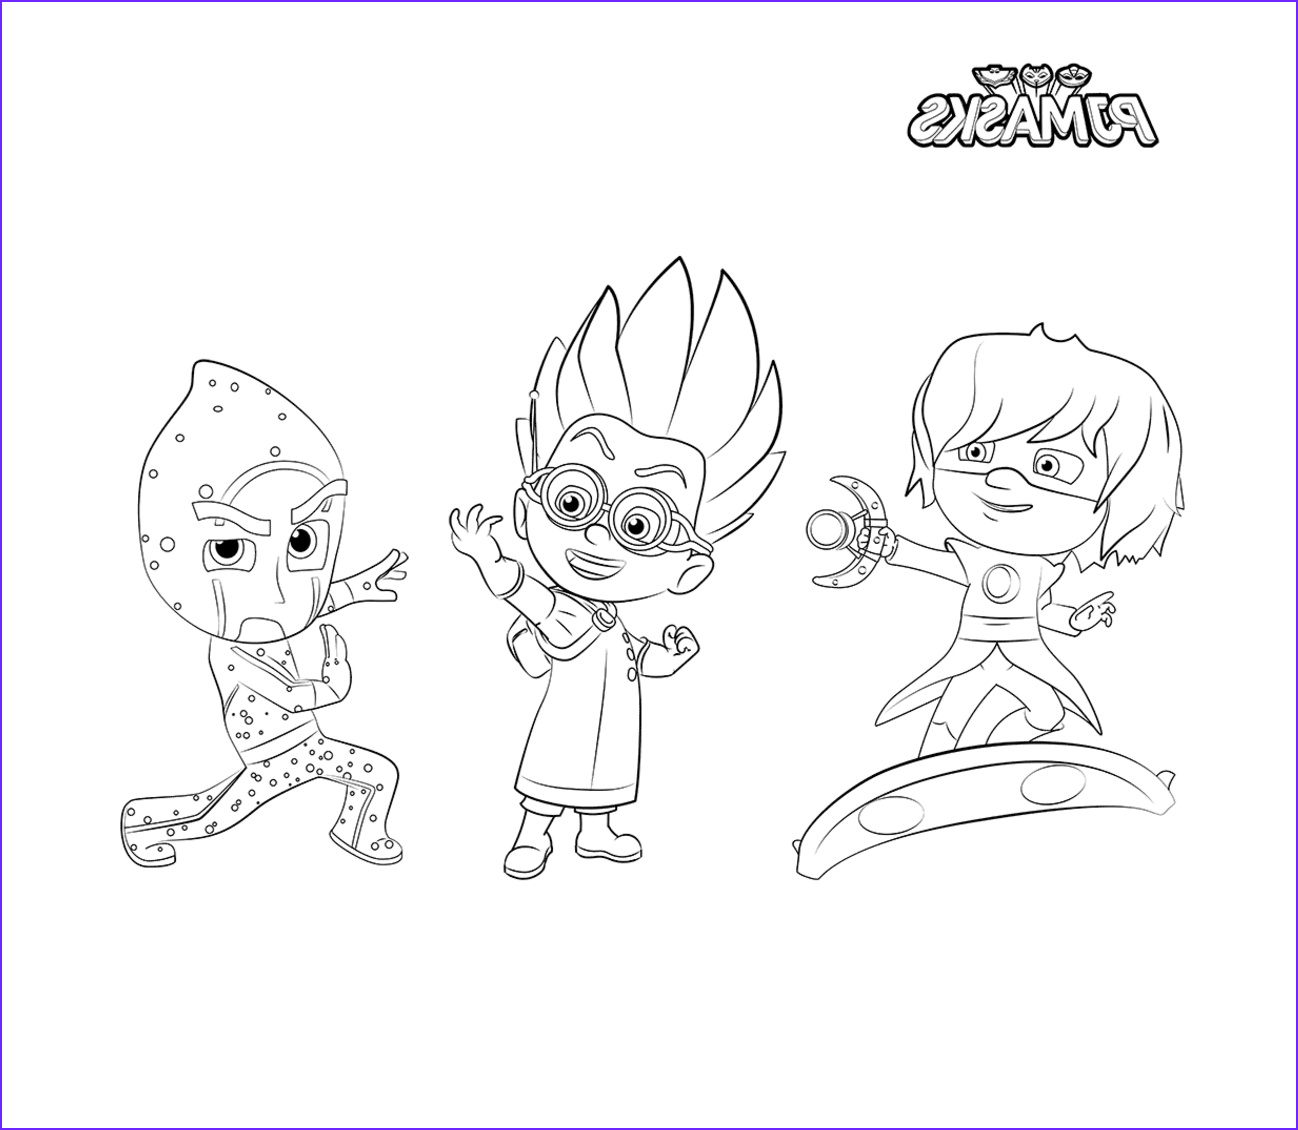 Pj Masks Coloring Inspirational Stock Pj Masks Coloring Pages to and Print for Free